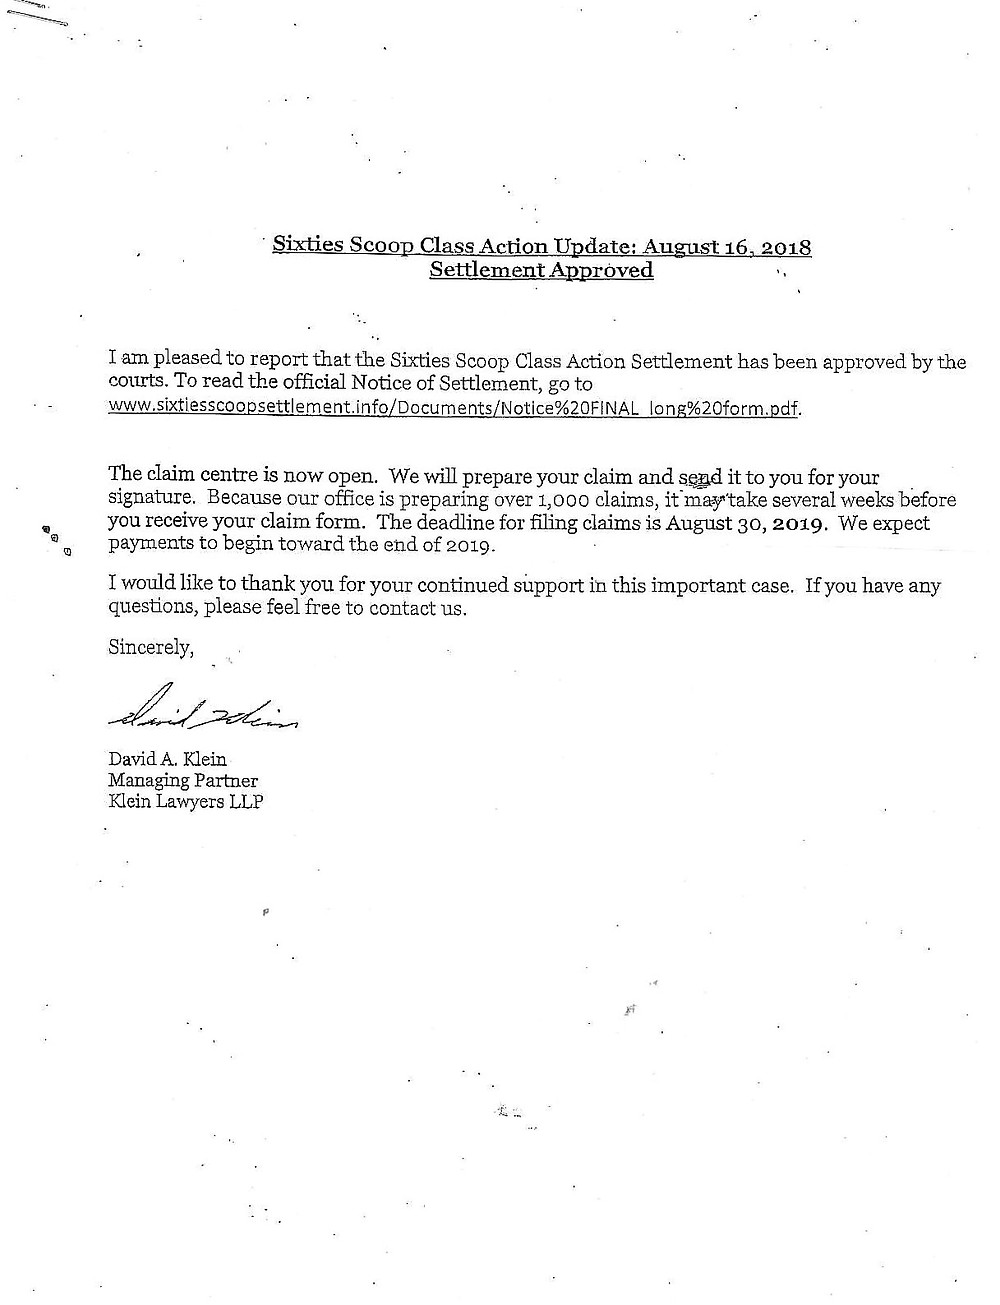 Please see attached regarding the Class Action lawsuit.  According to the notice, the deadline to file a claim is August 30, 2019, so there's still time